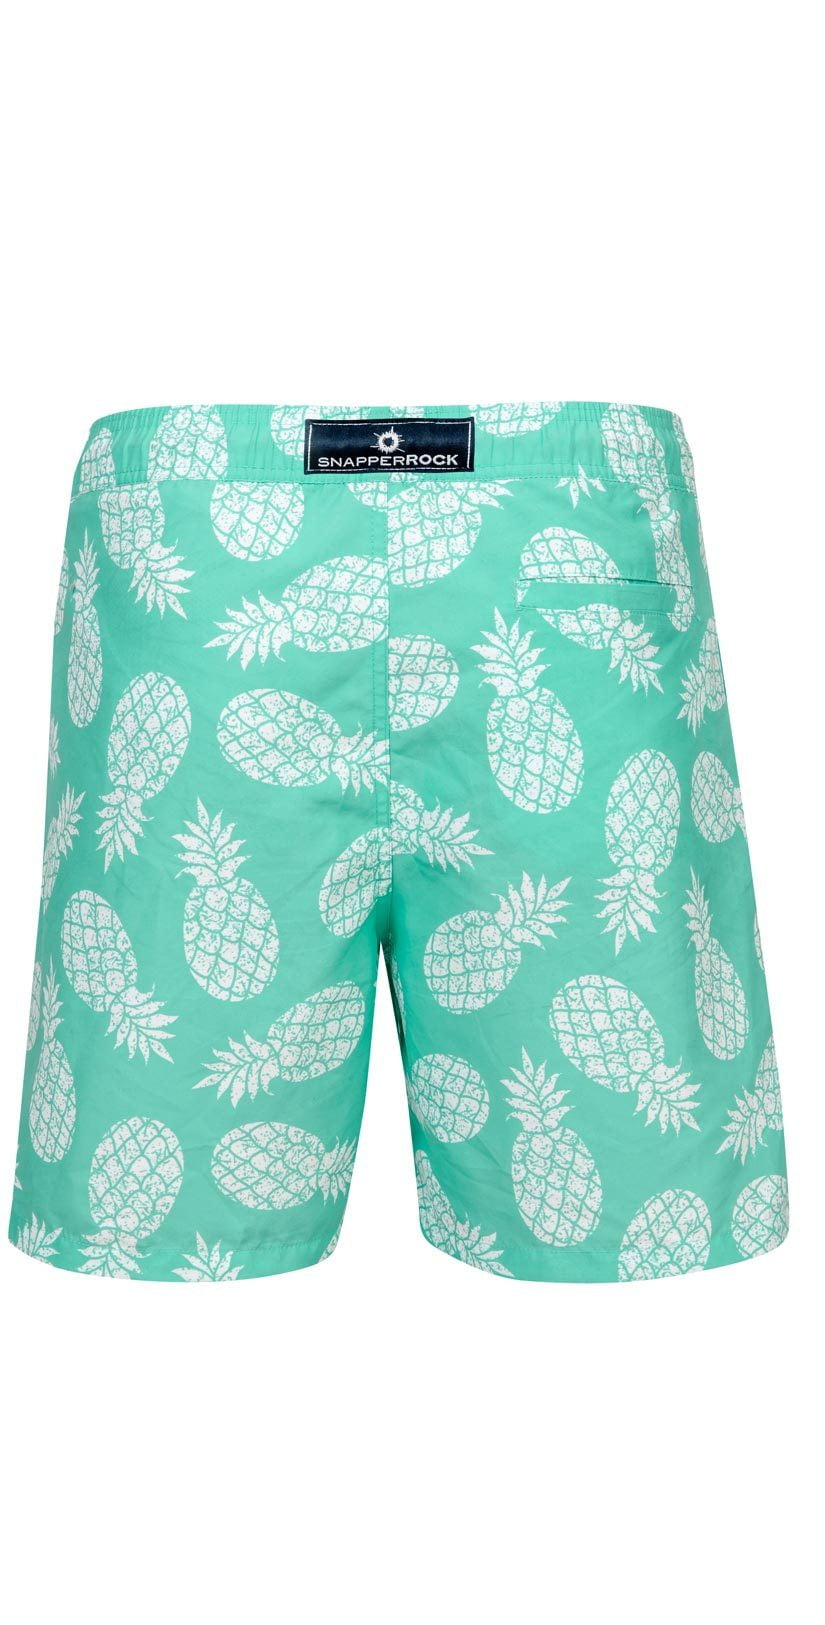 Snapperrock Boy's Mint Pineapple Board Short B90034P: